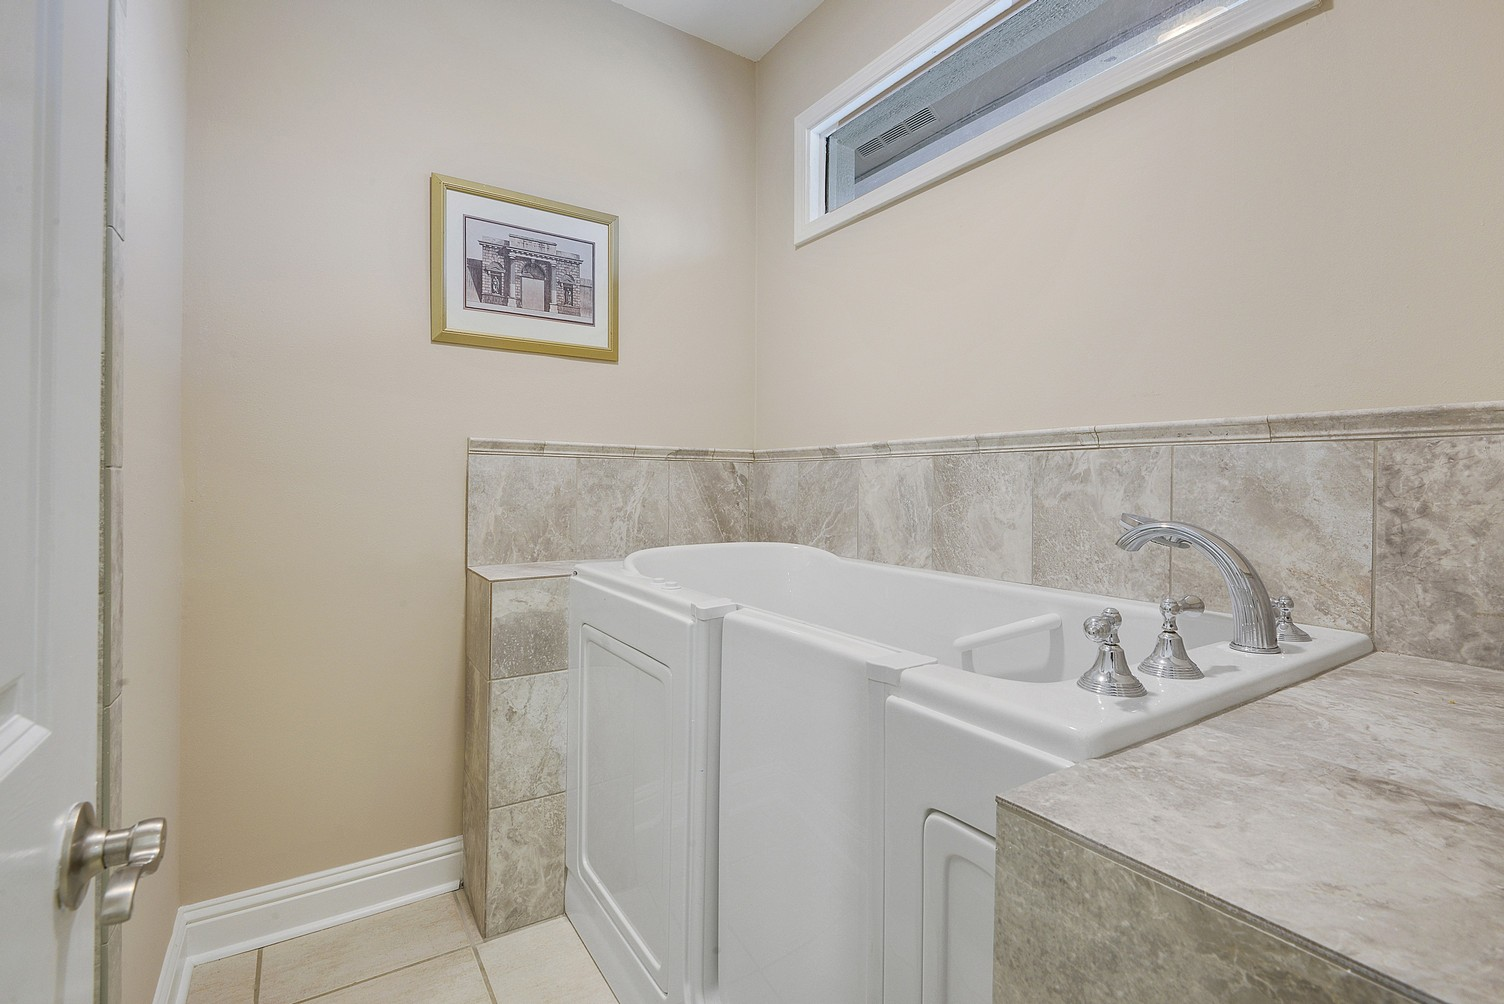 Bathroom Sinks Baton Rouge bathroom remodeling baton rouge la - zitro construction services